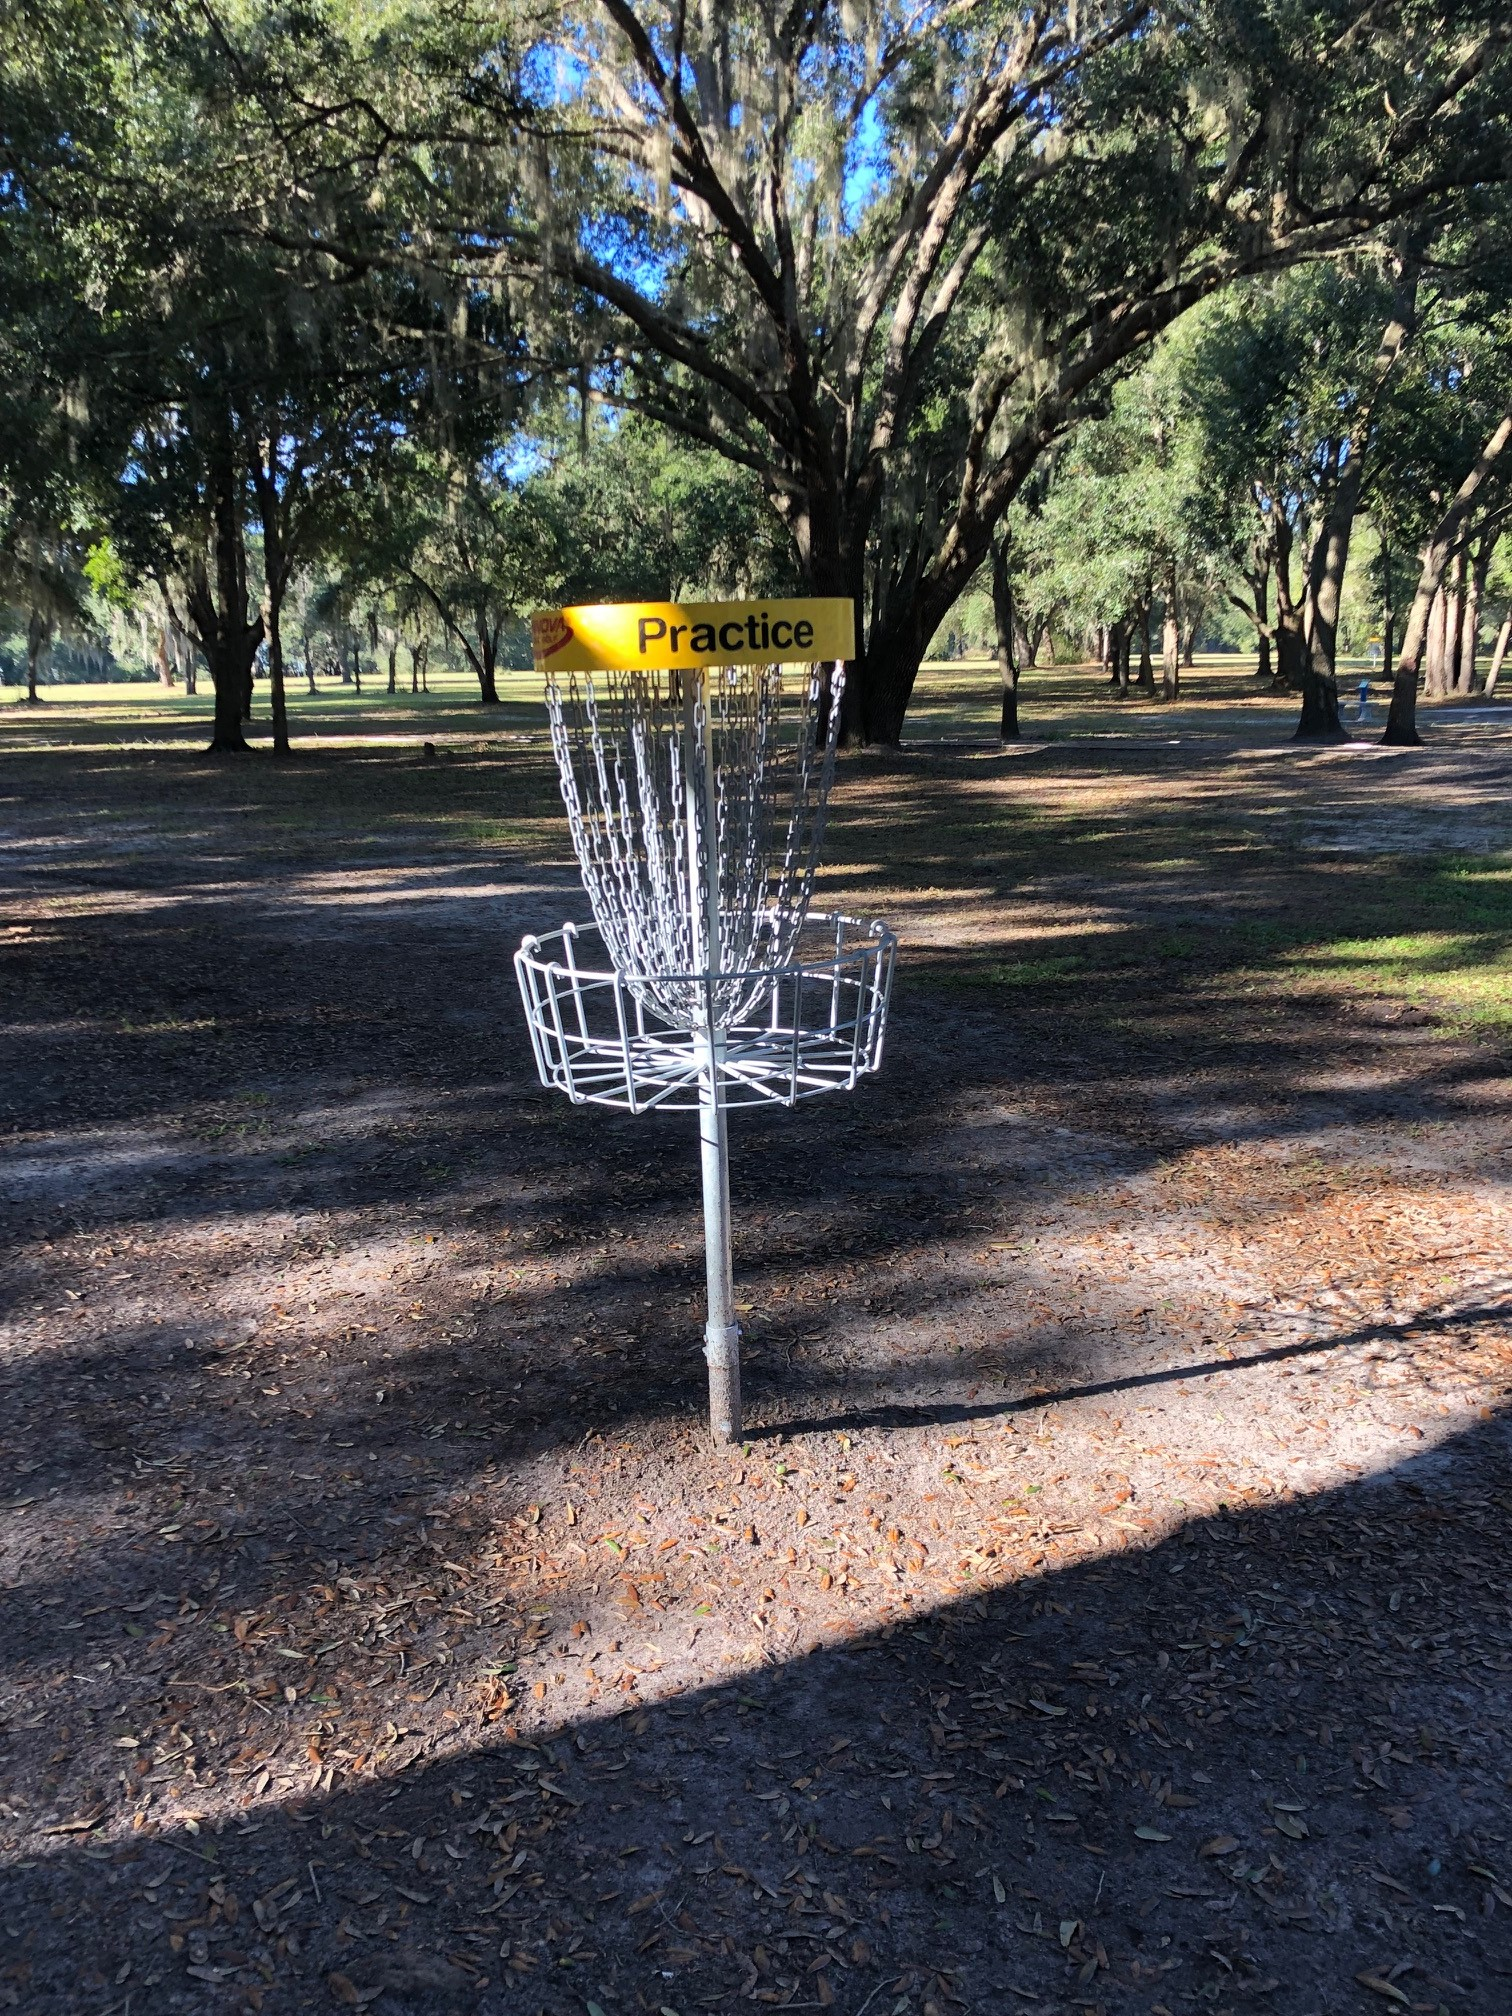 Disc golf practice basket on Clermont course